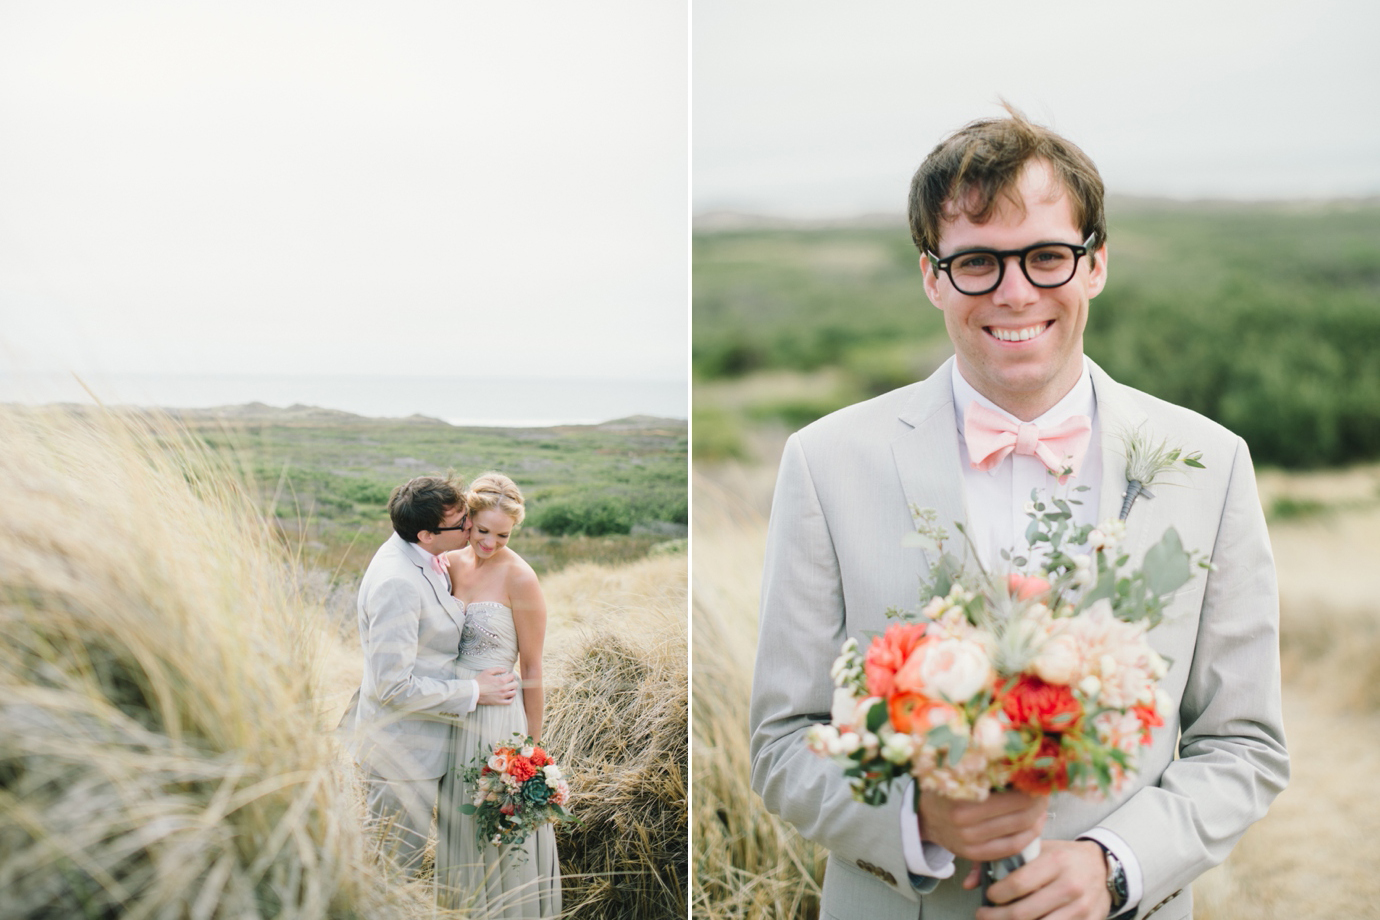 Martha Stewart Weddings: TIm & Anna // Costonoa Wedding Featured In Martha Stewart